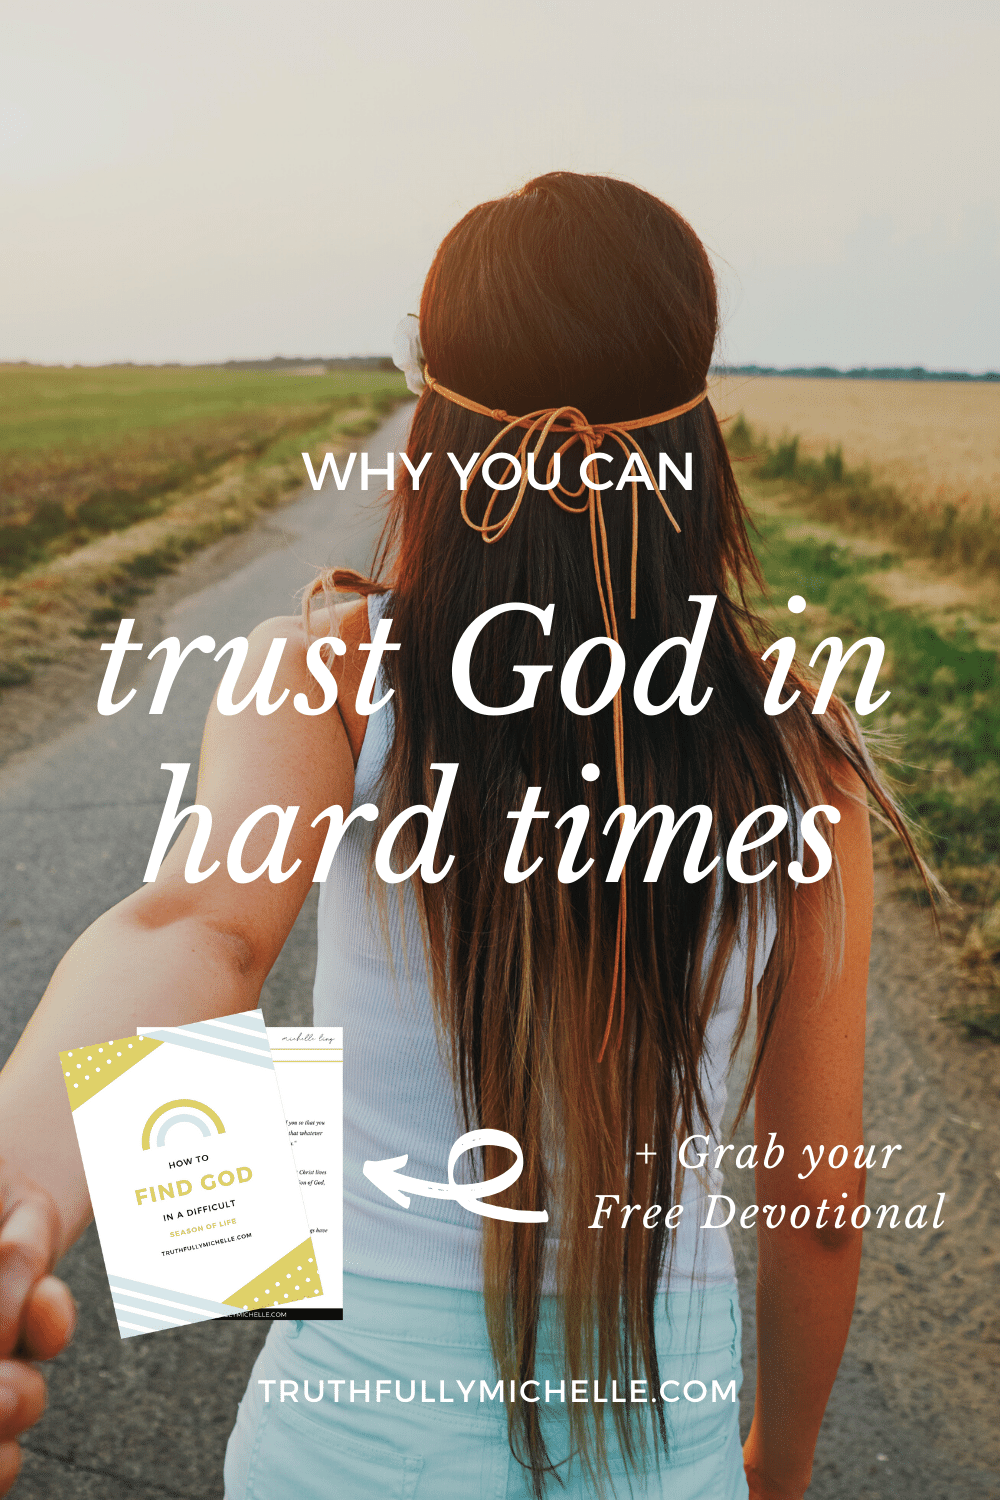 How to trust God in hard times, How to trust God in difficult times, Finding God in a difficult season of life, Finding God in a hard season of life, How to find God in hard times, How to trust God in times of trials